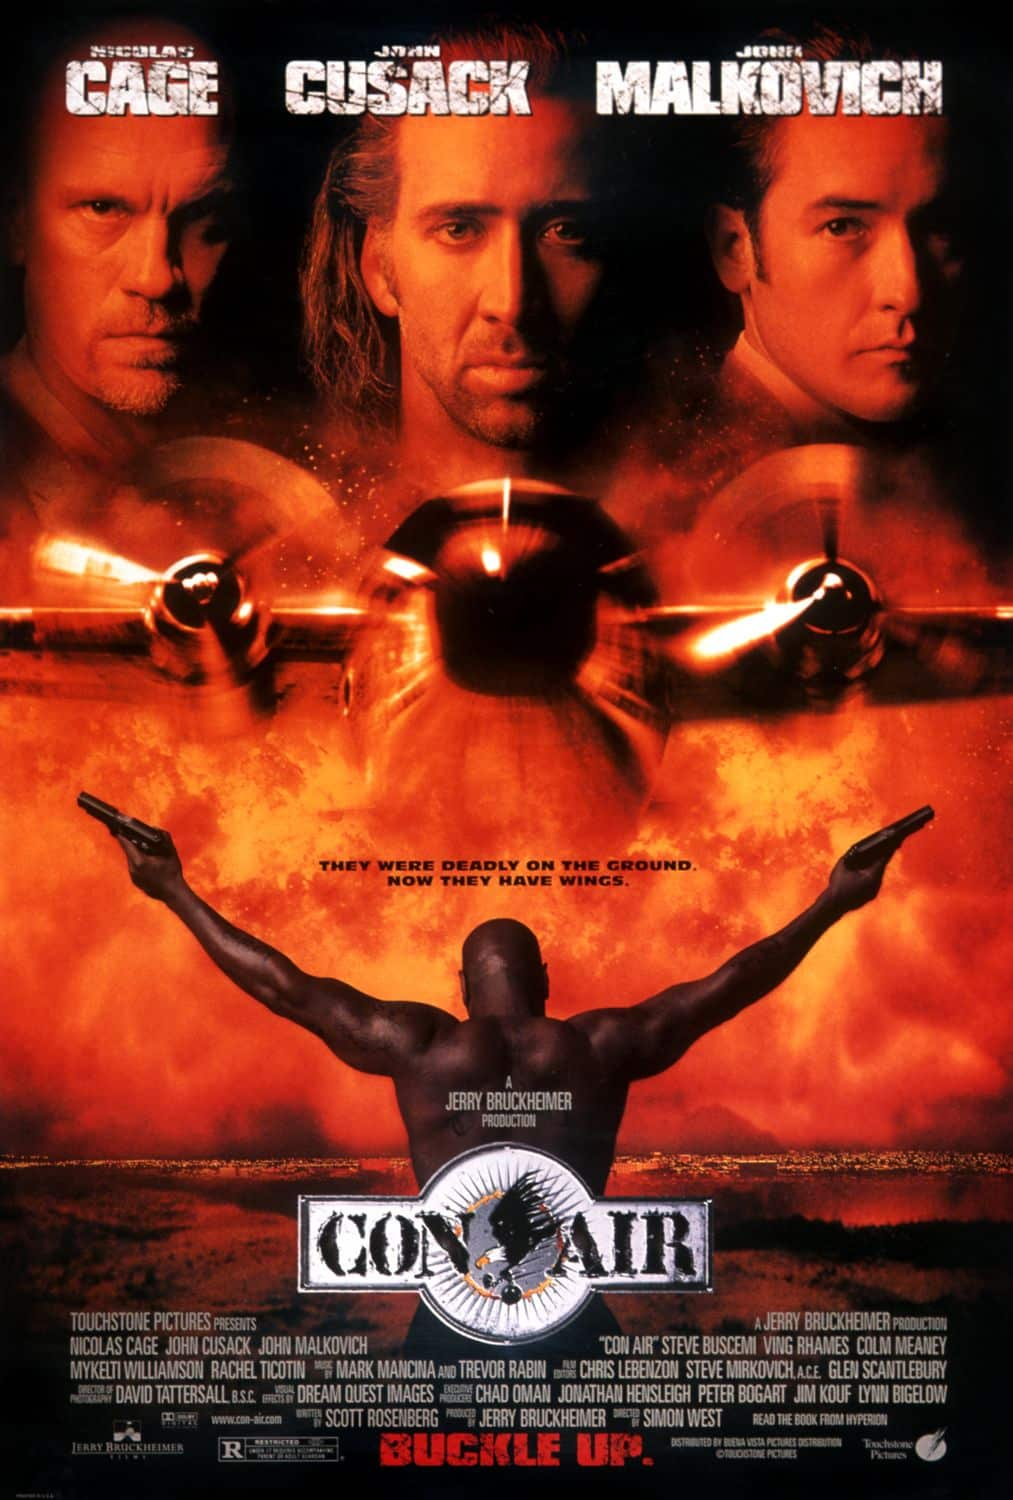 Con Air - A Rota da Fuga - O Ultimato Retrô 1